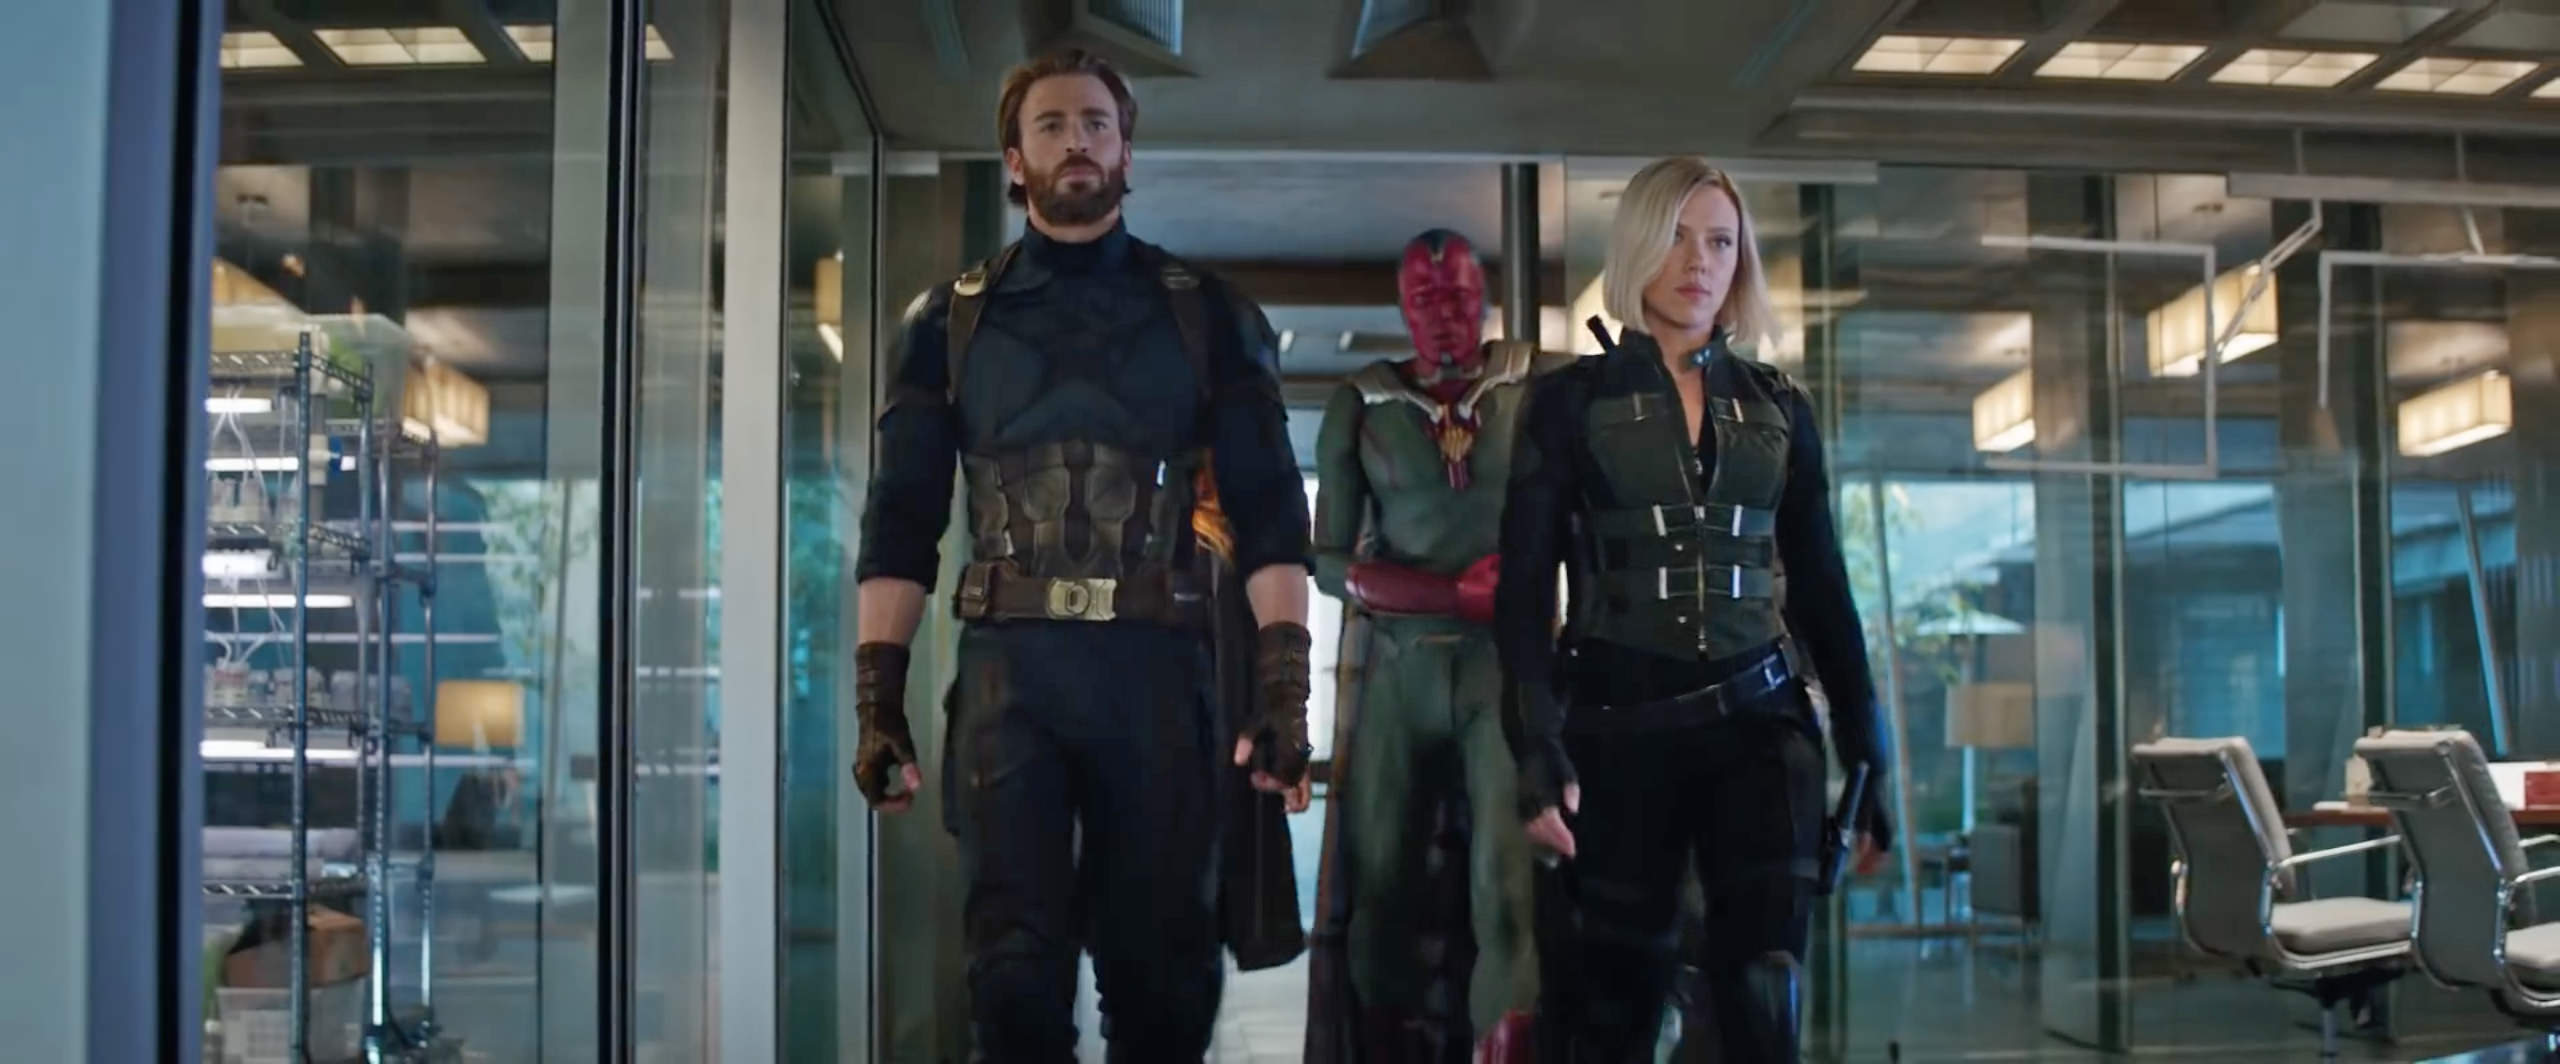 Avengers Infinity War Trailer Still